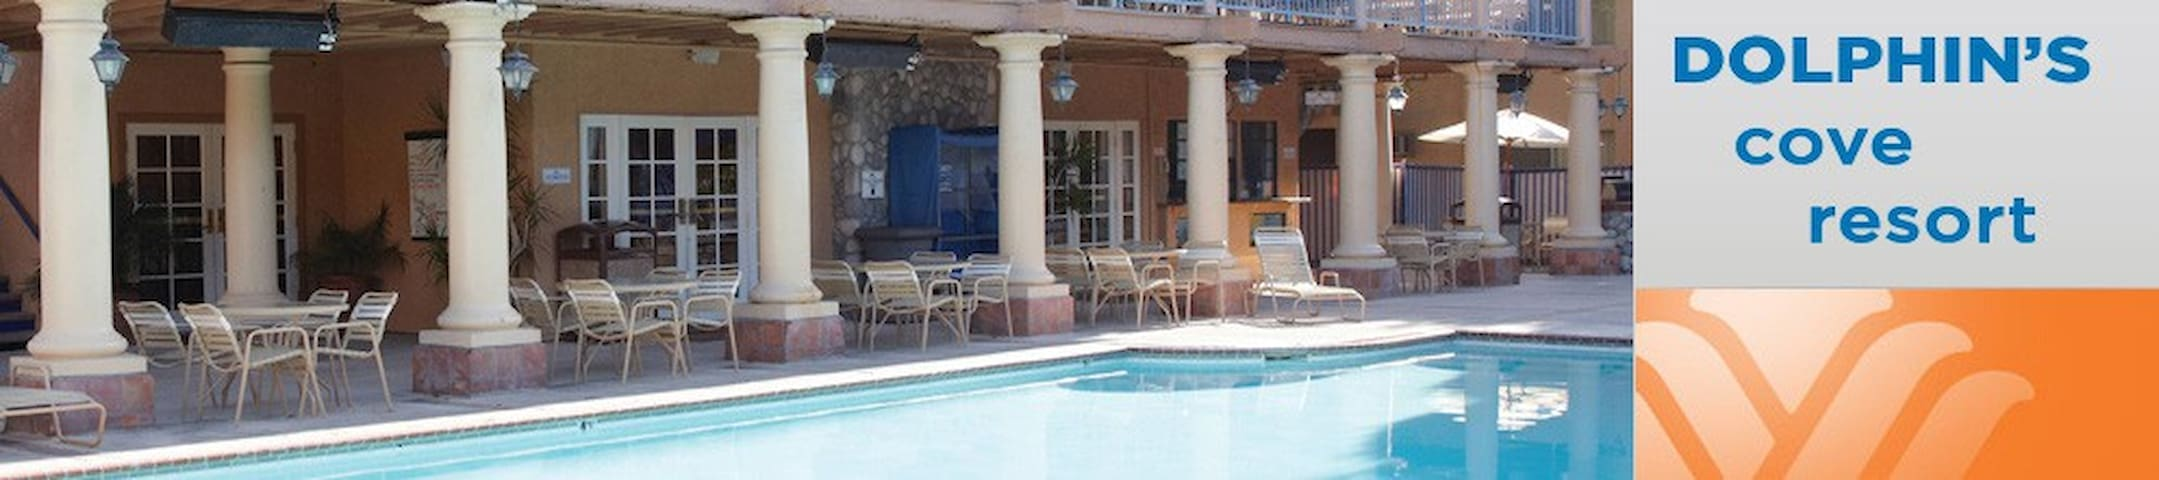 Dolphin's Cove (Disney) timeshare (max 4) - Anaheim - Pis